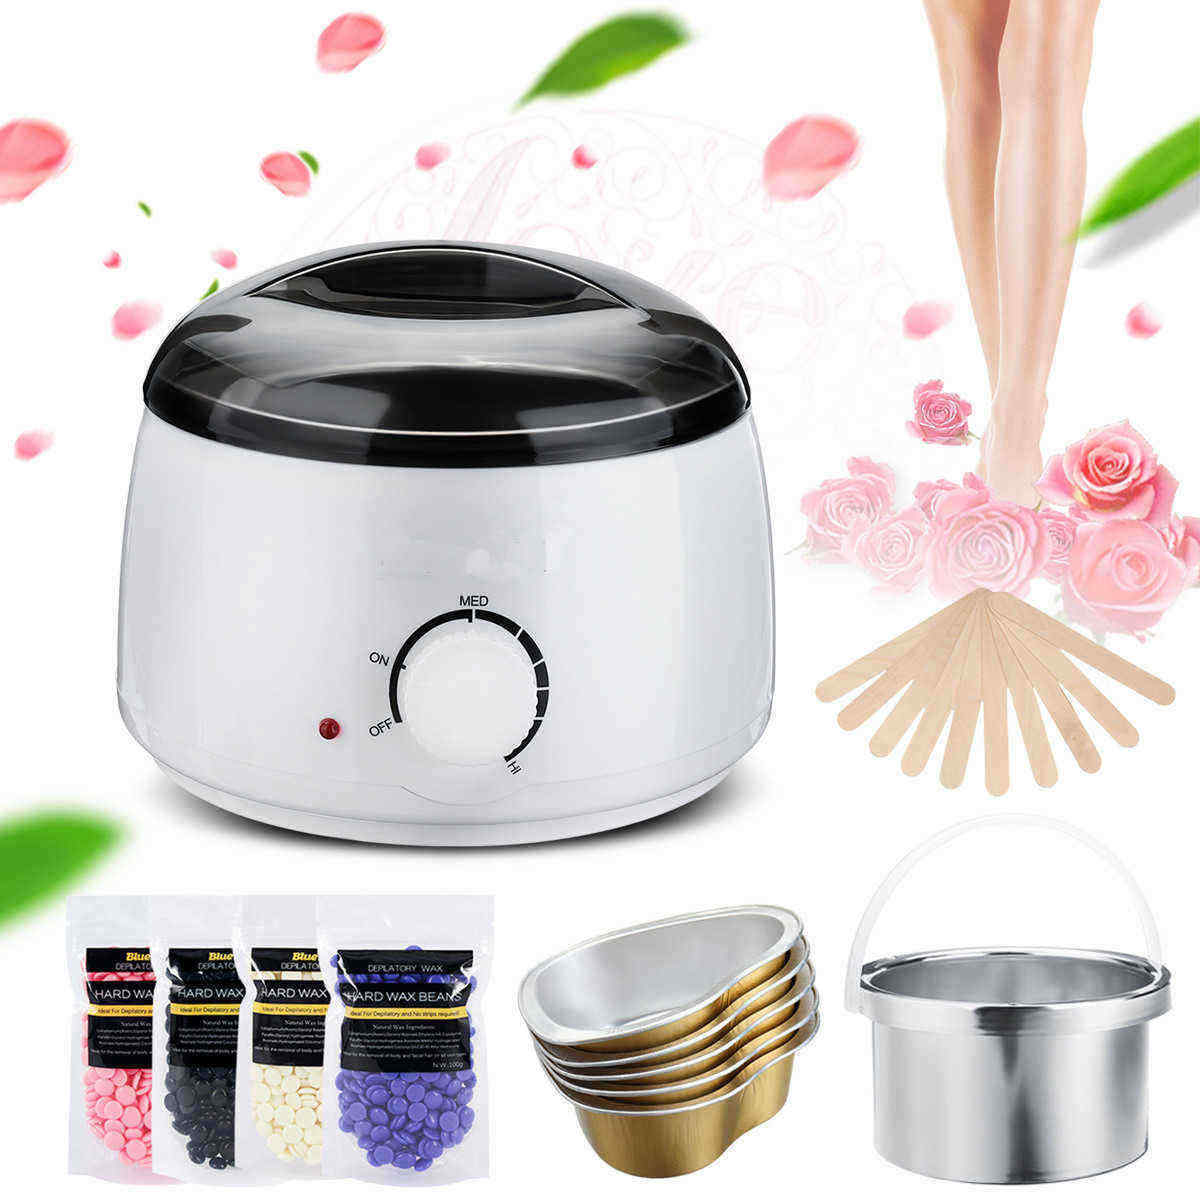 110V-Electric-Wax-Heater-Full-Body-Hair-Removal-Epilator-Waxing-Machine-with-Wax-Bean-Depilatory-Kit-1413723